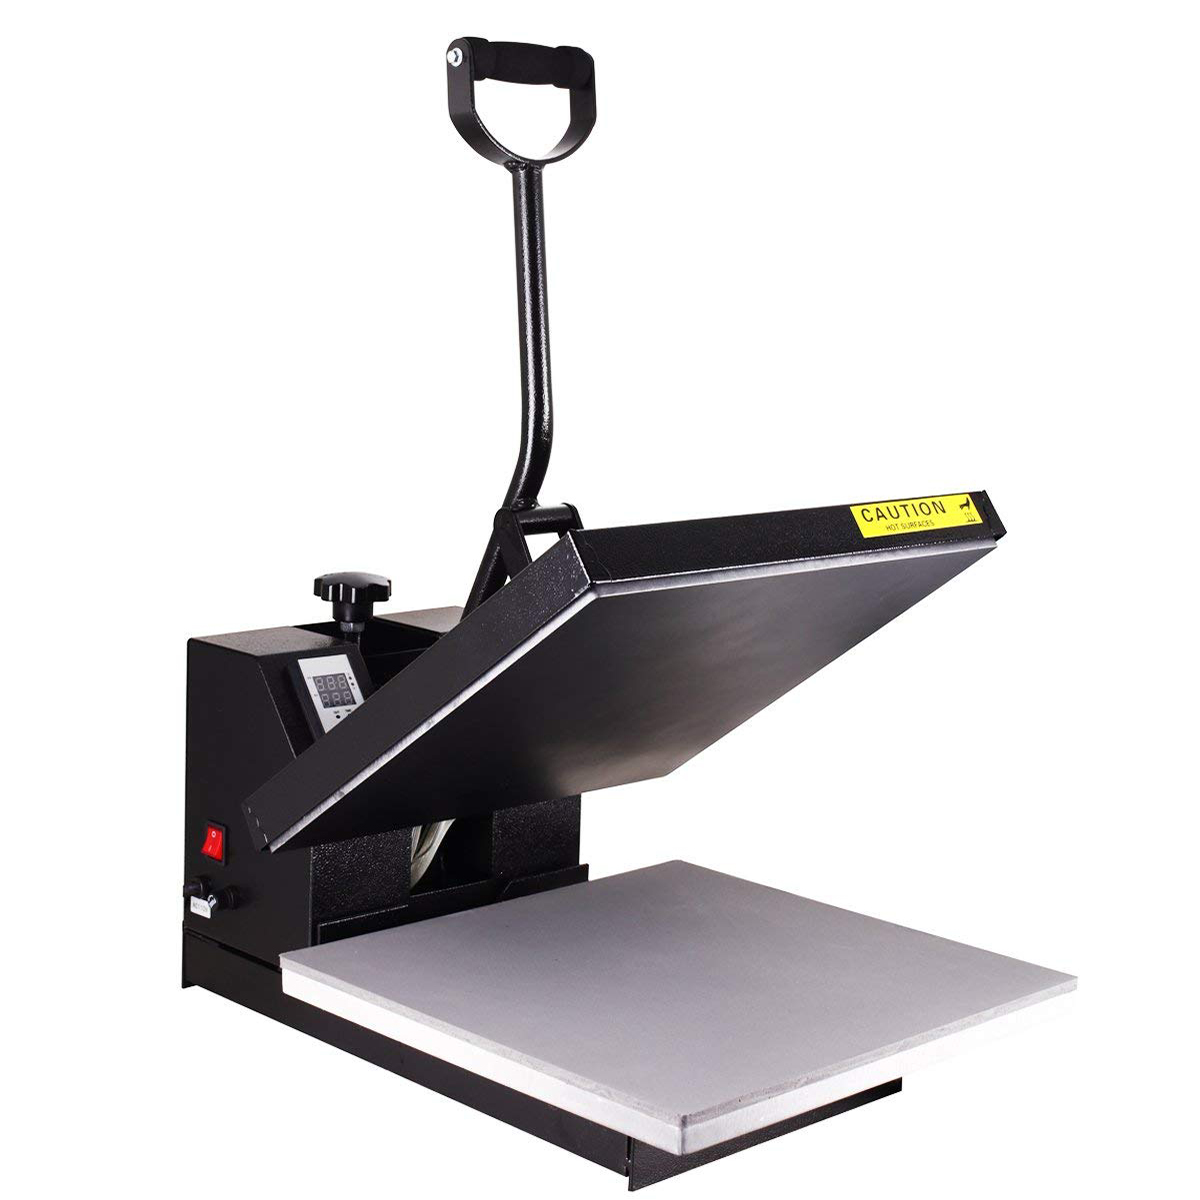 "Industrial-Quality Digital 15"" x 15"" Heat Press Machine Sublimation T-Shirt Power Press Black"